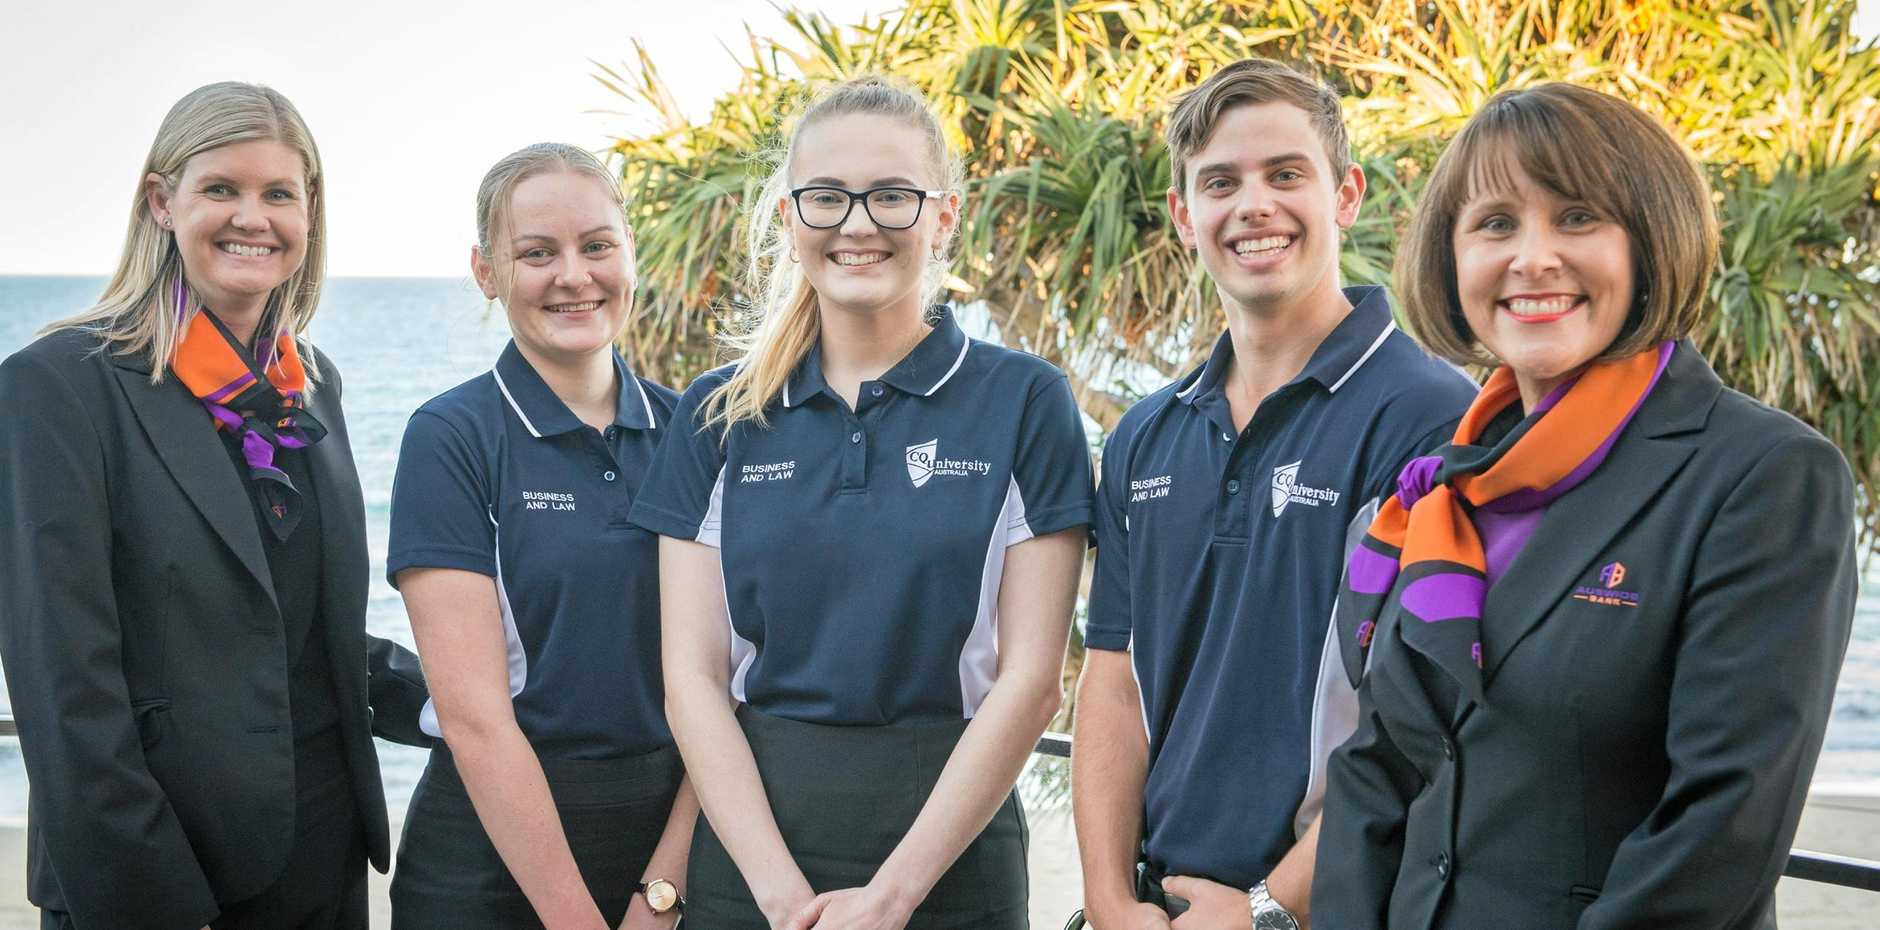 PROMISING STARTS: Auswide Bank's Tahnee Hrelja, CQUniversity students School of Business and Law Brooke Dunn, Caitlin Turnbull, Ryan Paul and Auswide's Bank Gayle Job, .